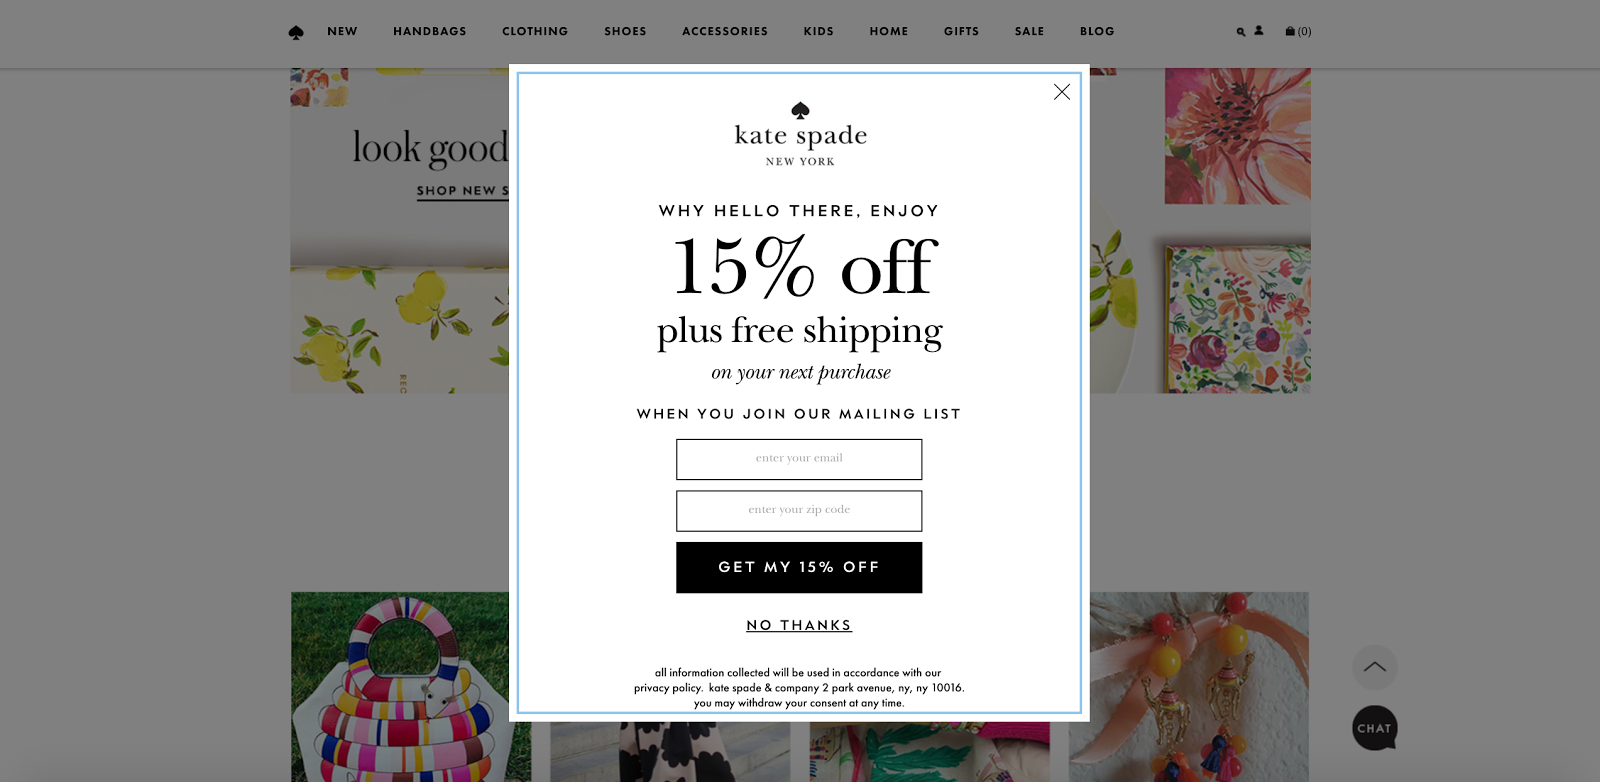 An email pop-up on Katespade.com